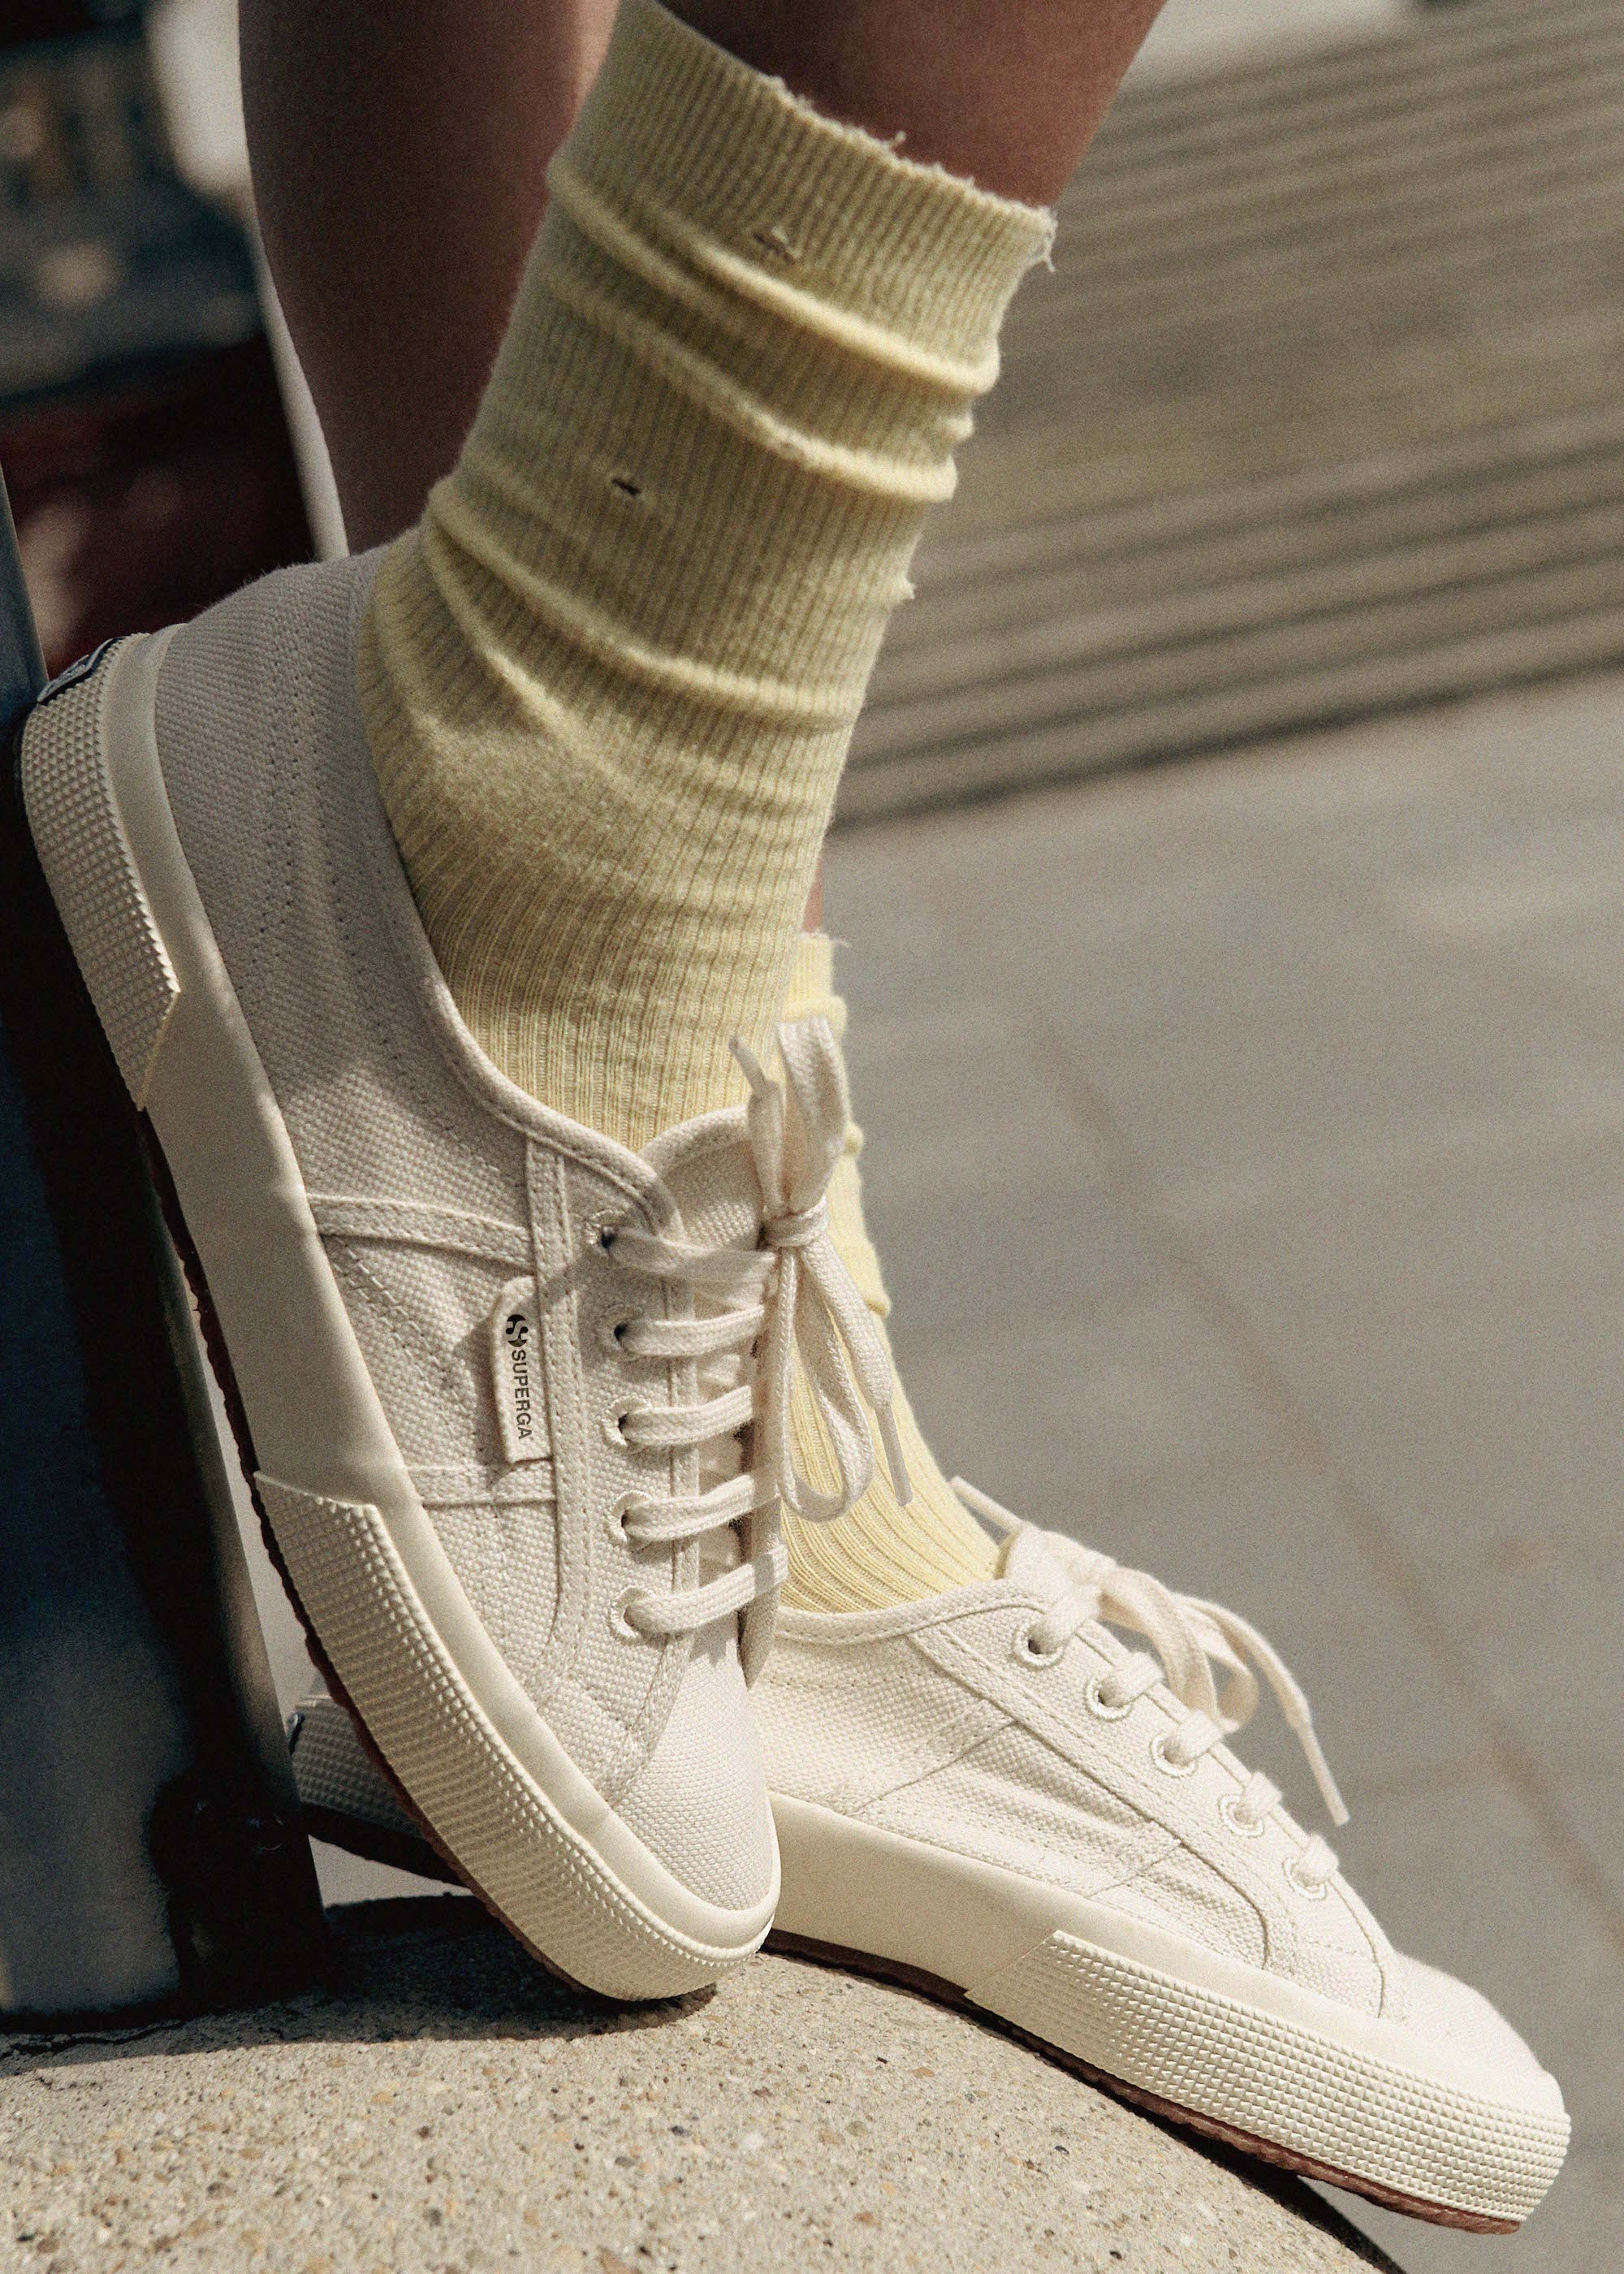 Milky white sneakers paired with yellow socks.